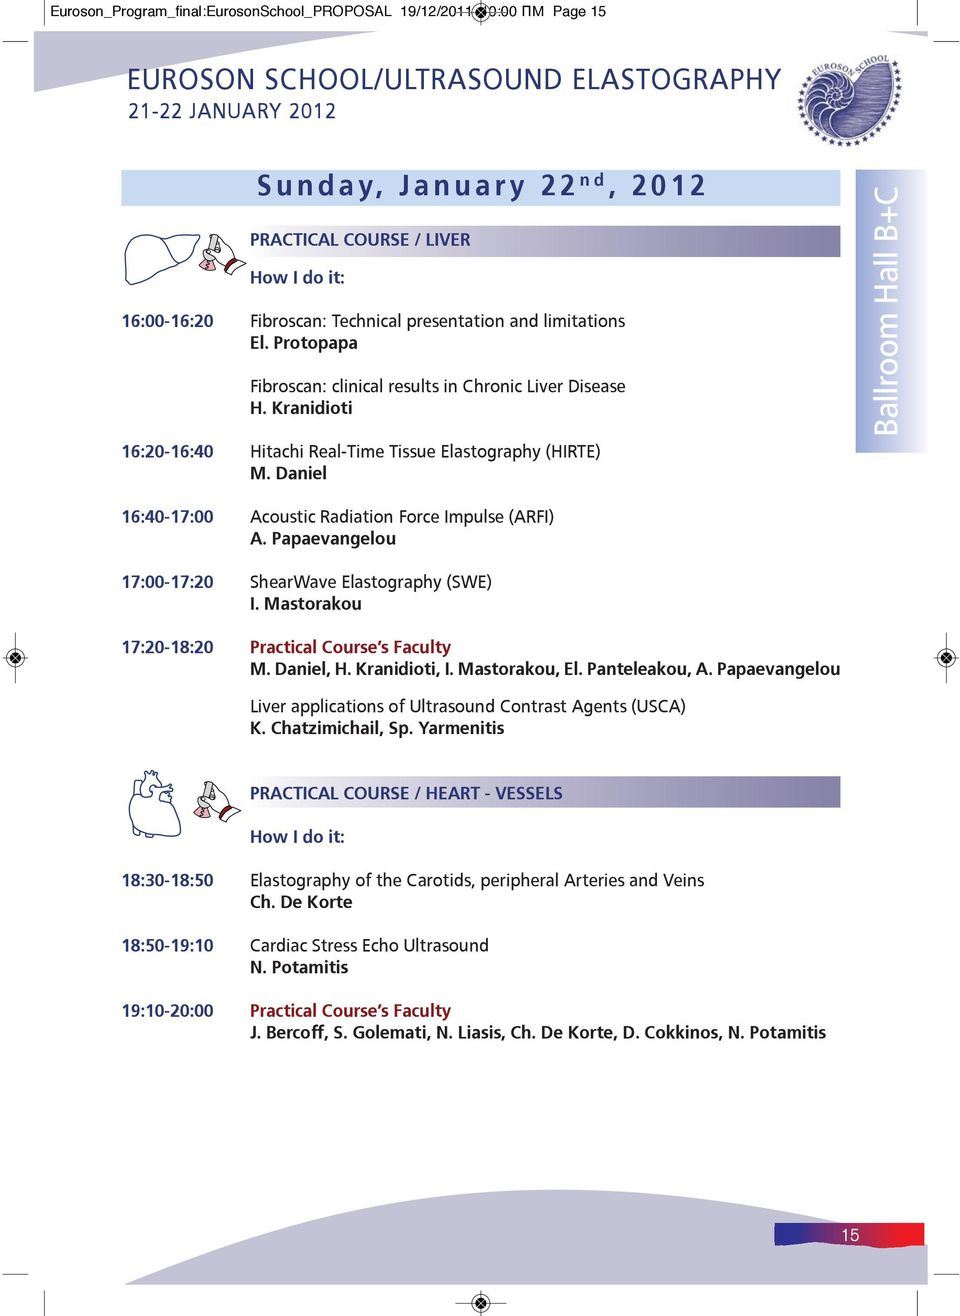 Daniel Ballroom Hall B+C 16:40-17:00 Acoustic Radiation Force Impulse (ARFI) A. Papaevangelou 17:00-17:20 ShearWave Elastography (SWE) I. Mastorakou 17:20-18:20 Practical Course s Faculty M.